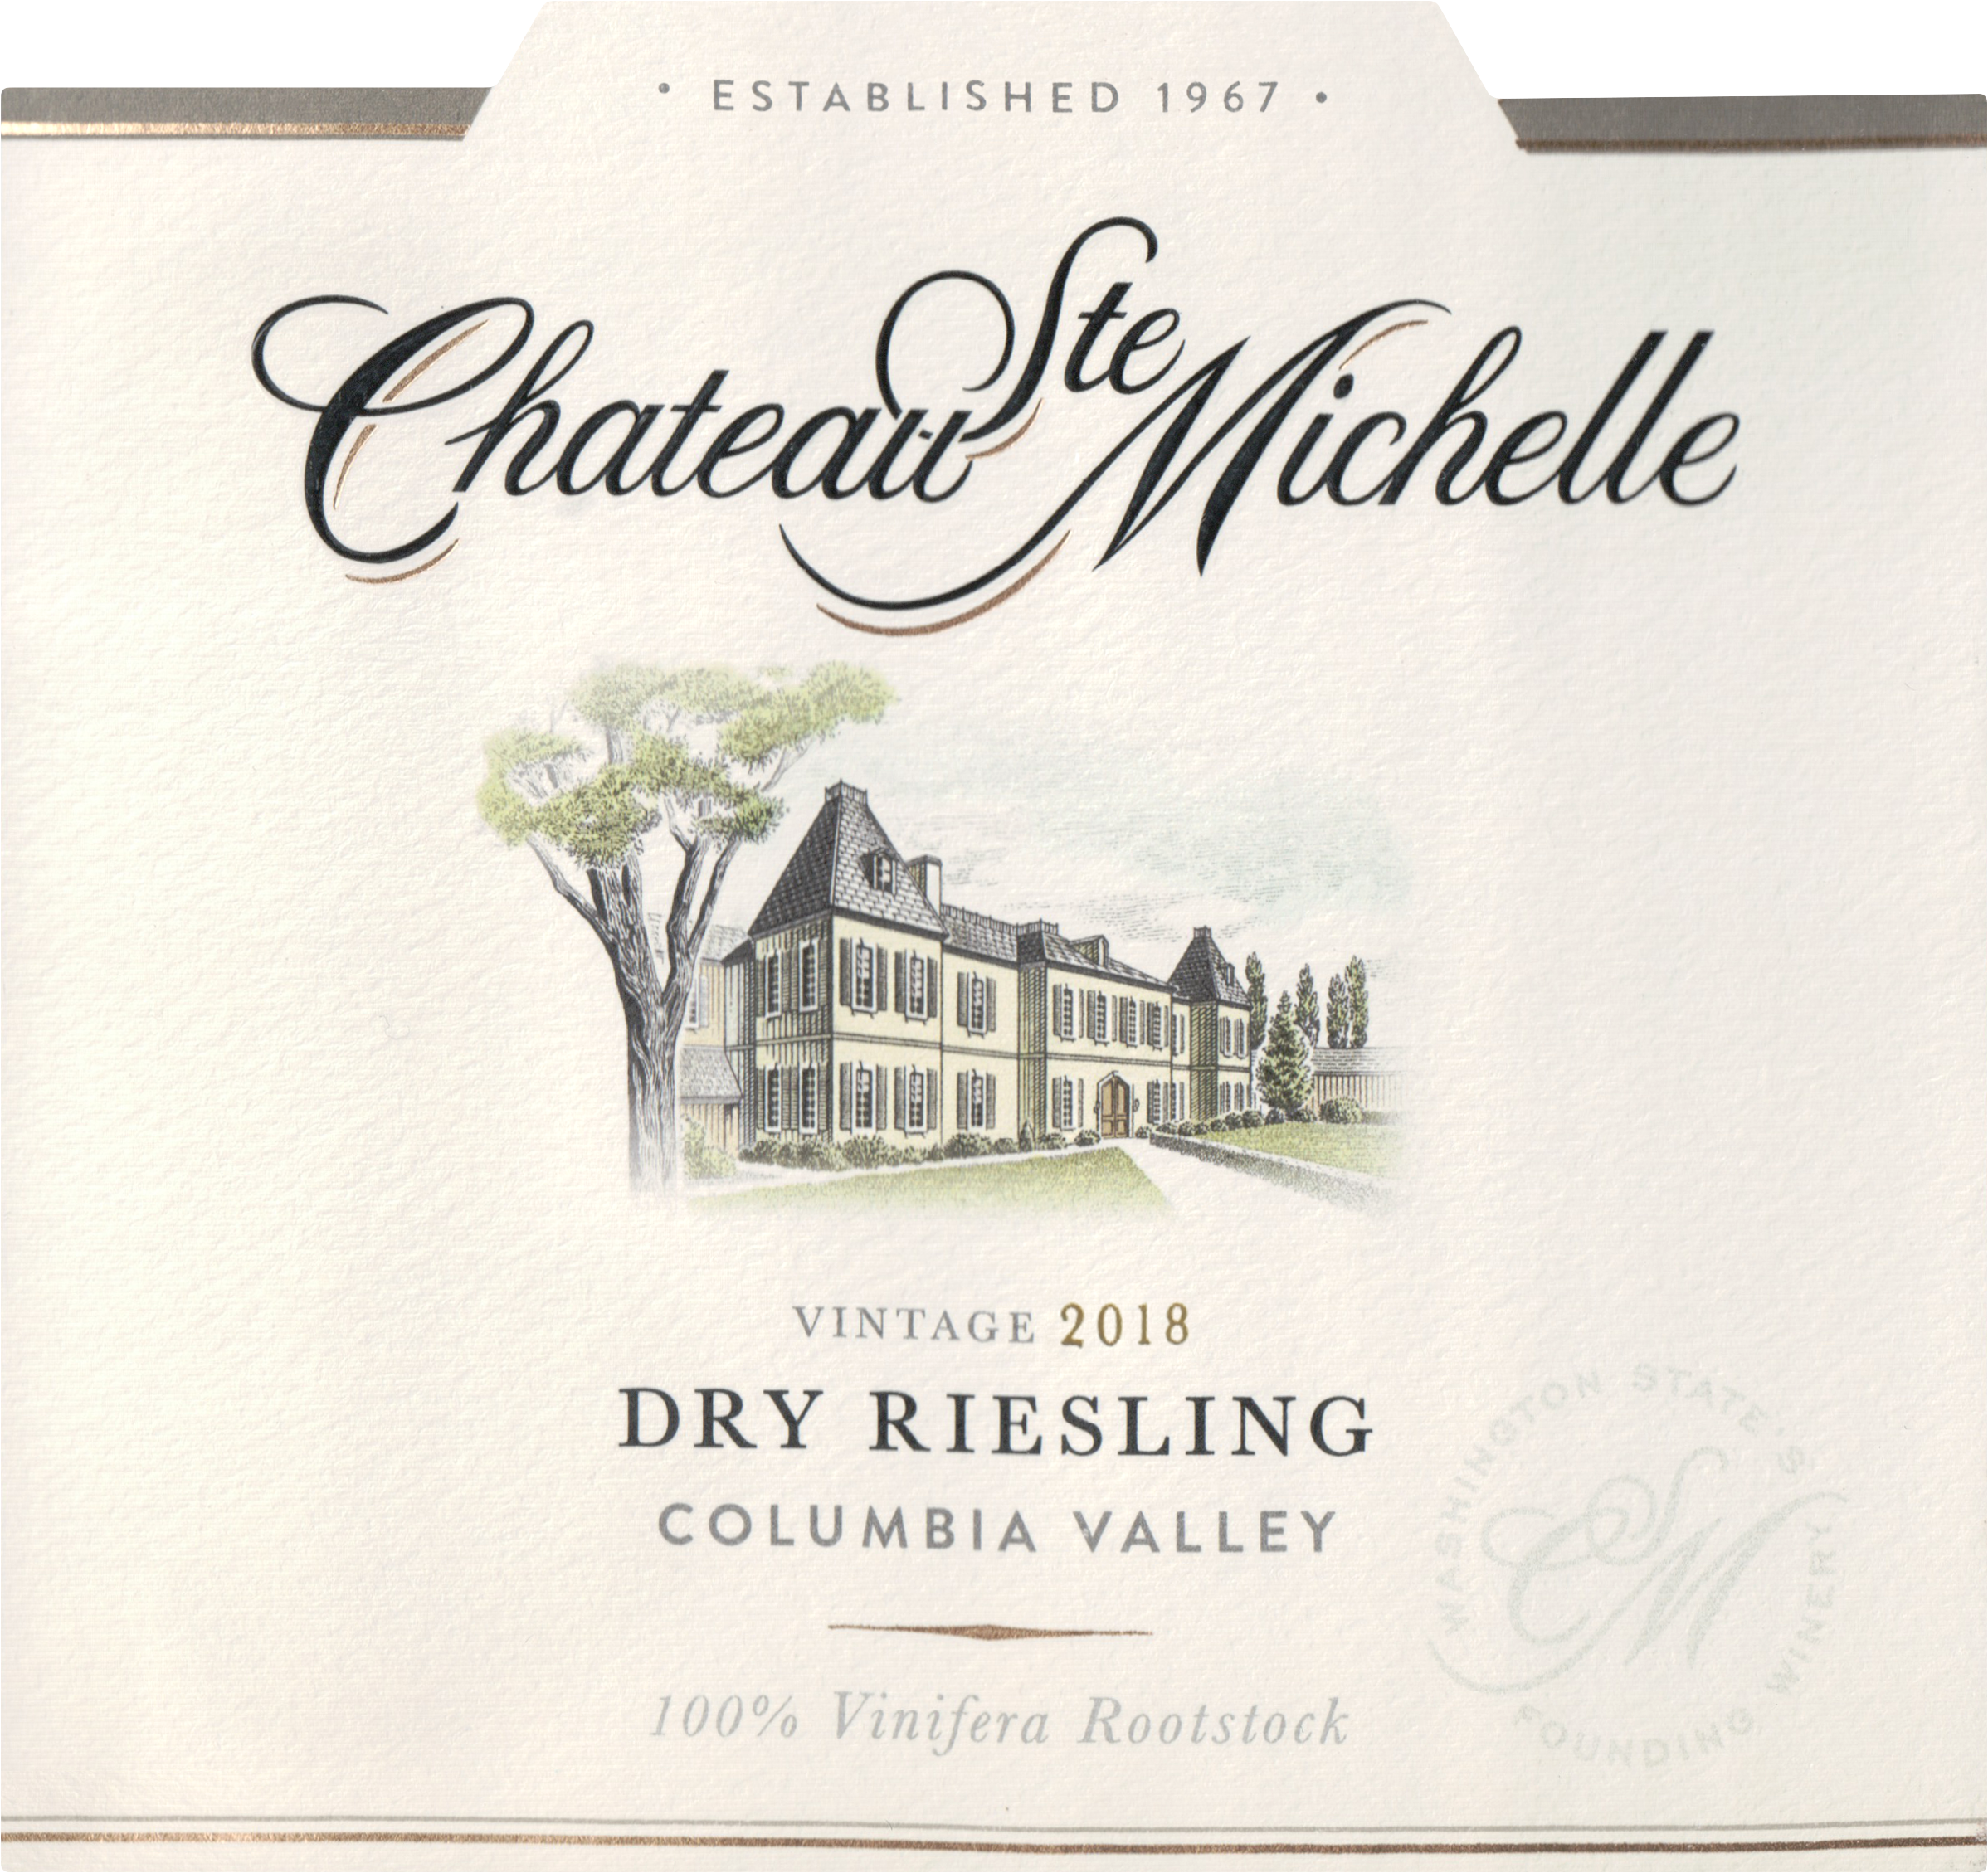 Chateau St. Michelle Dry Riesling 2018